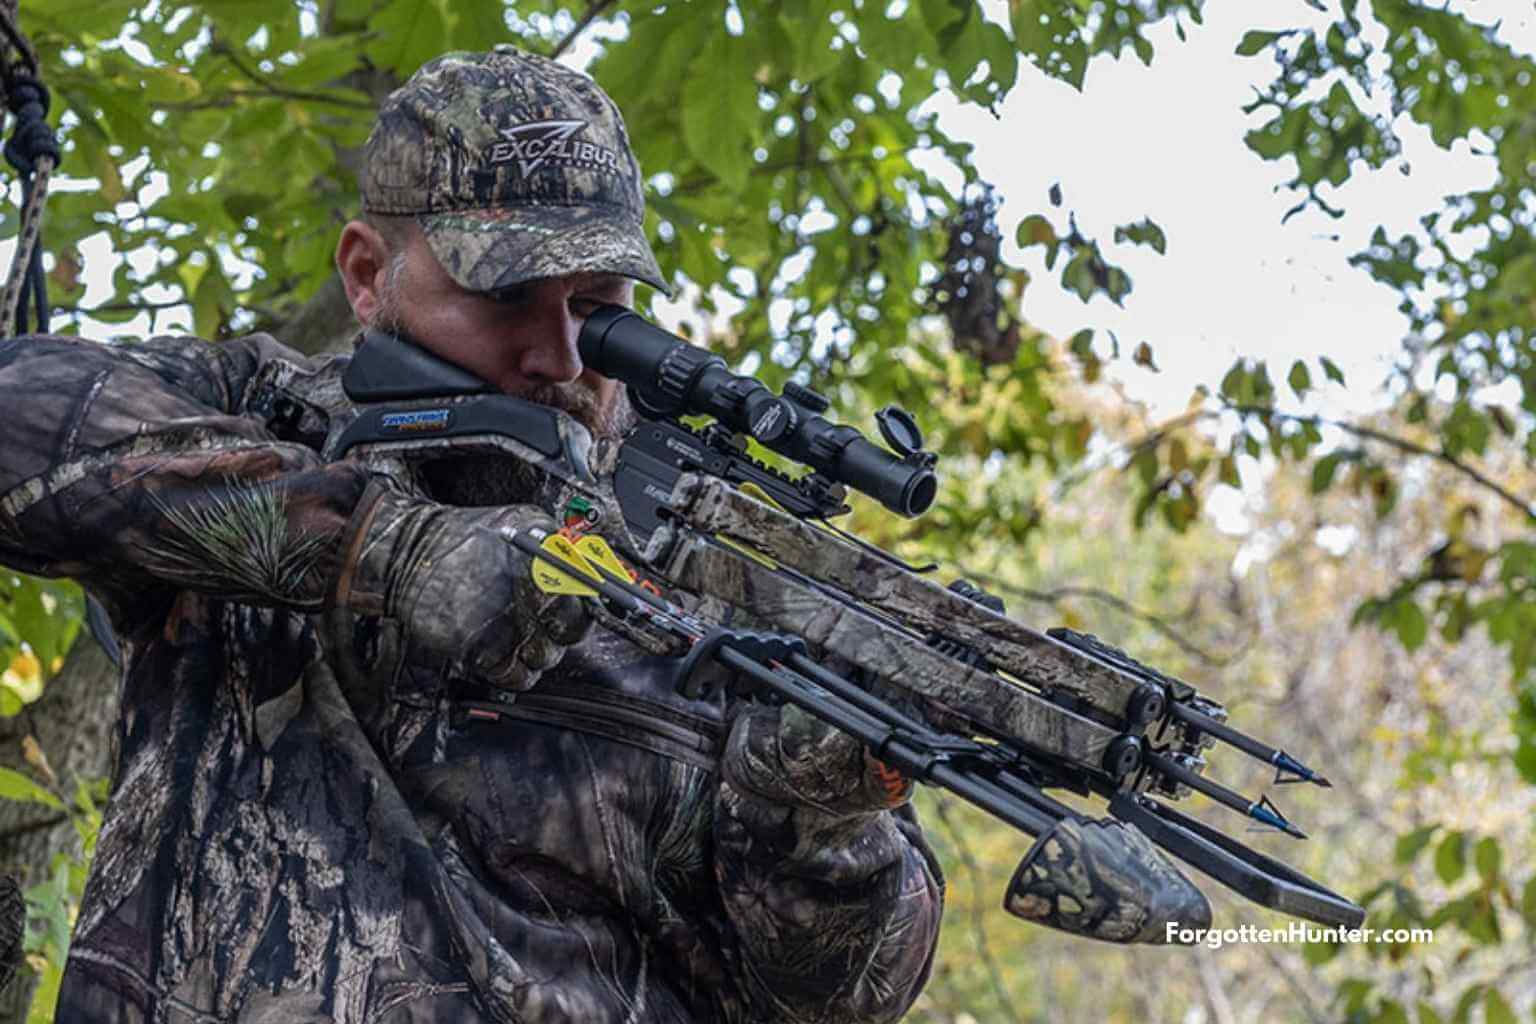 Excalibur TwinStrike Crossbow Review